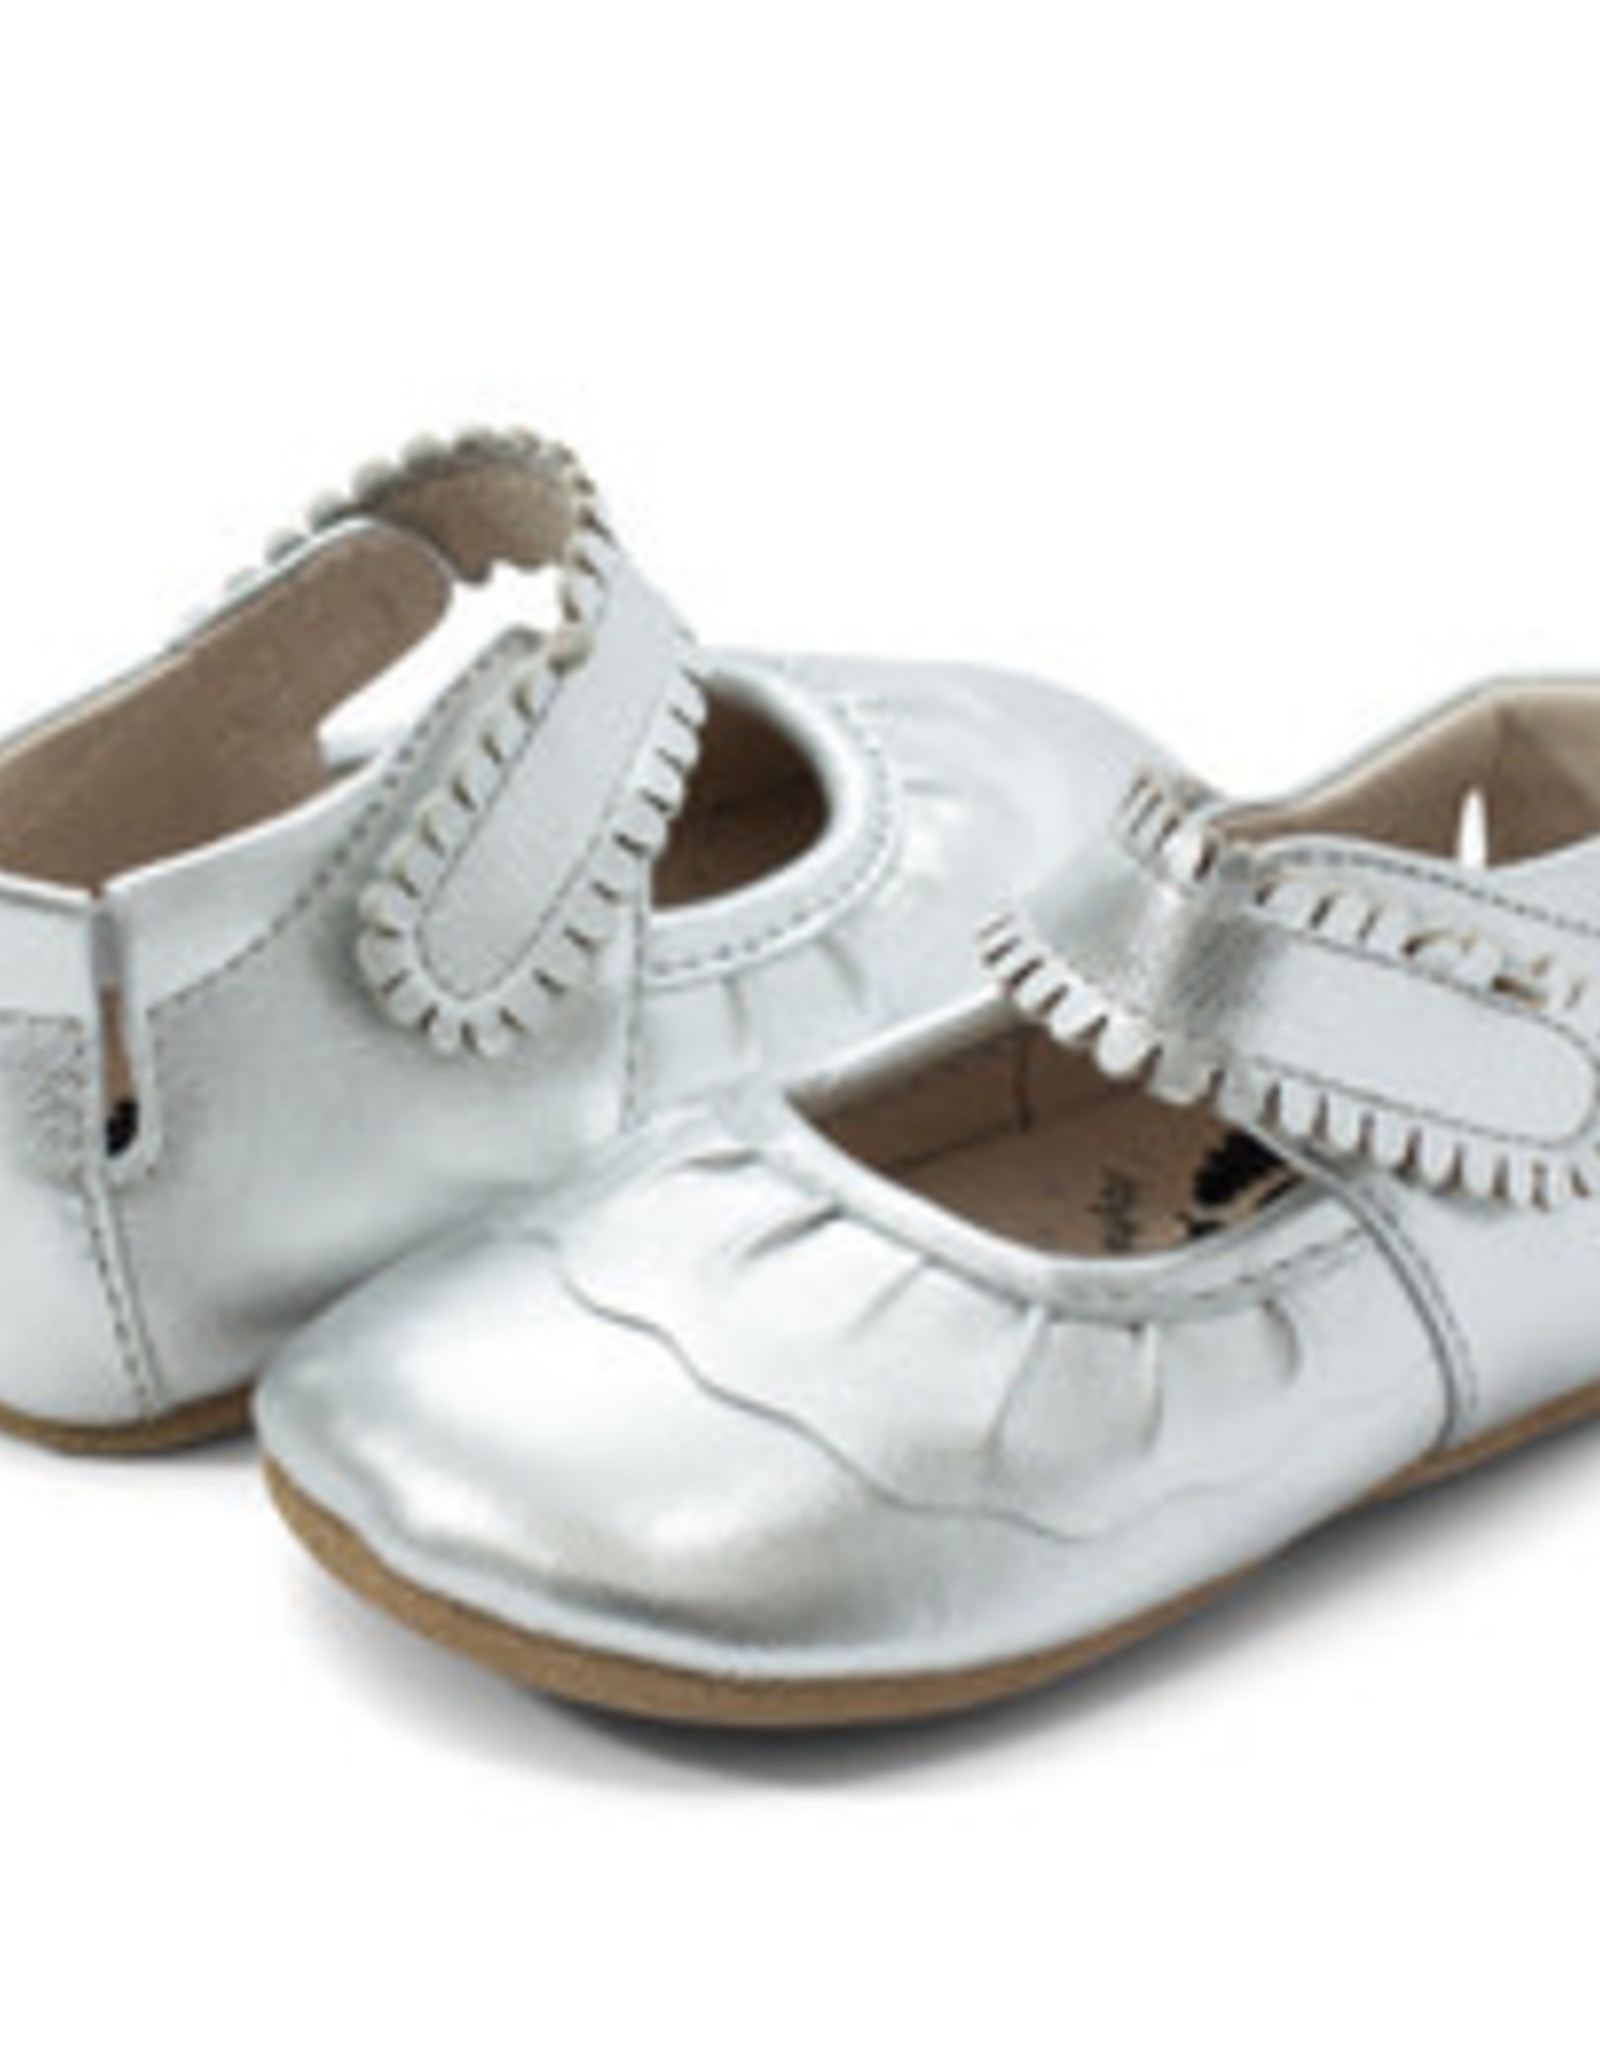 Livie and Luca Ruche for Baby in Silver Metallic